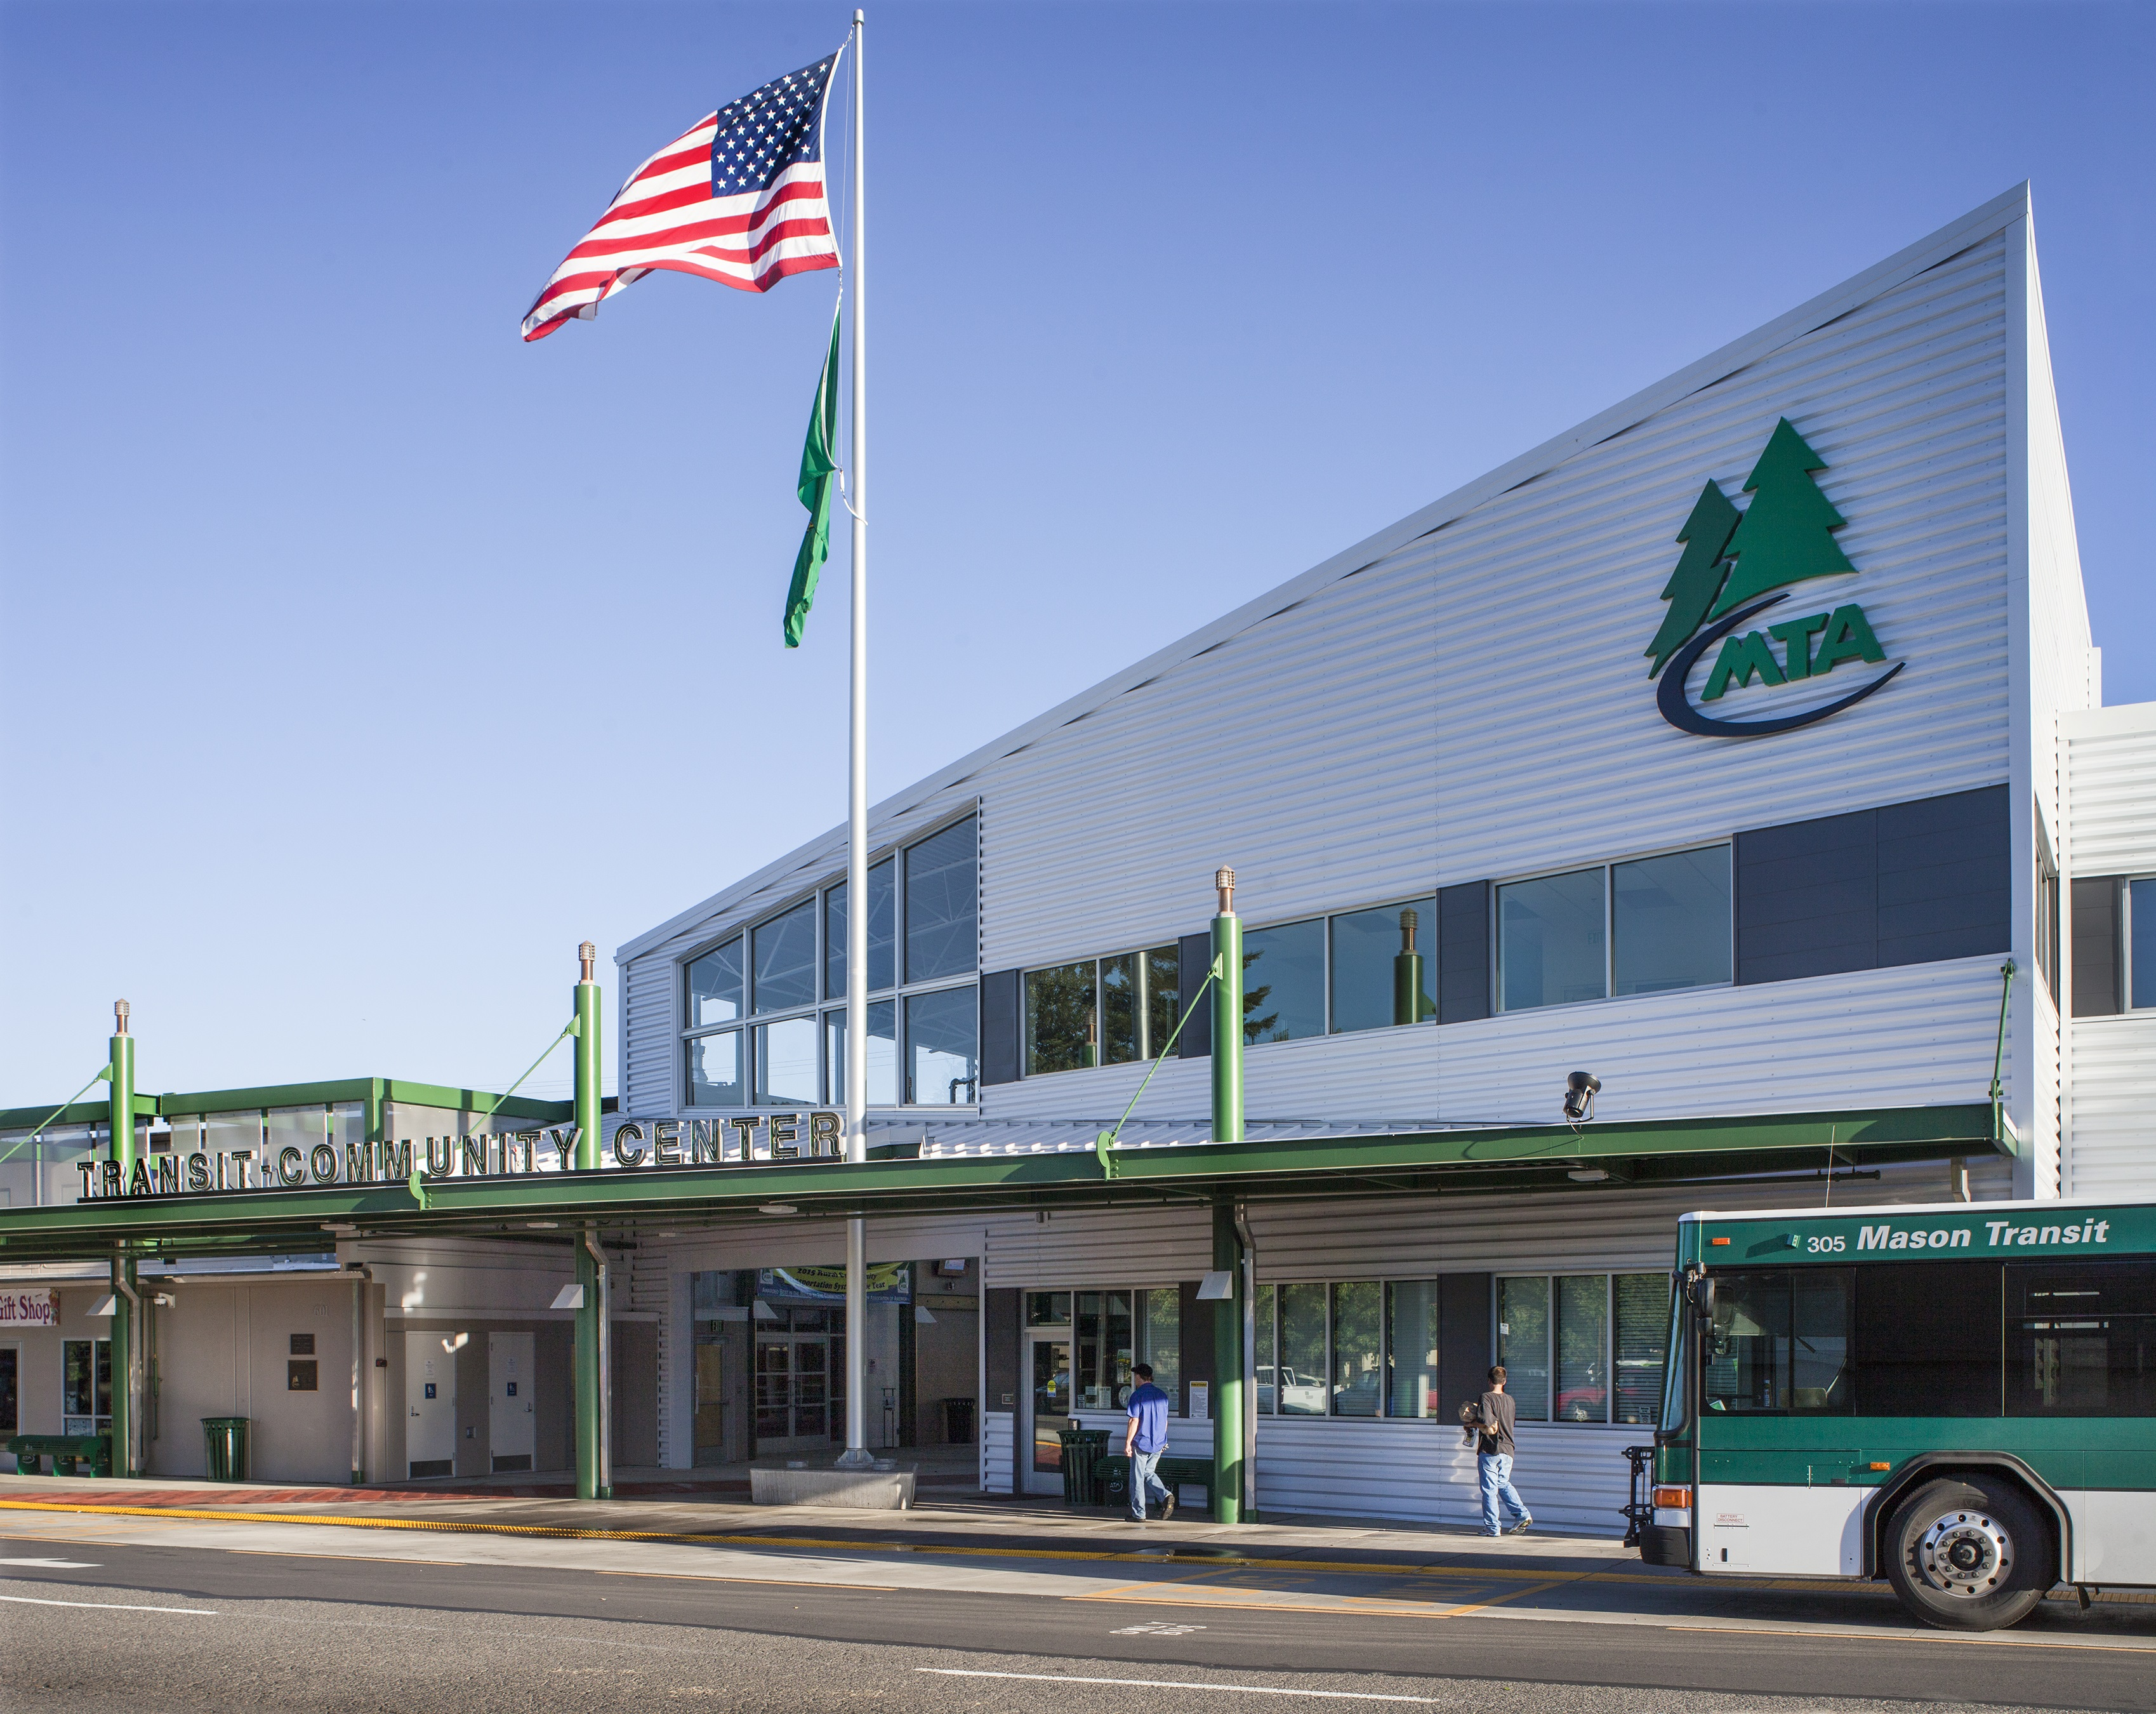 Photo showing the exterior of the MTA Transit-Community Center building with an MTA bus pulling up to the front.